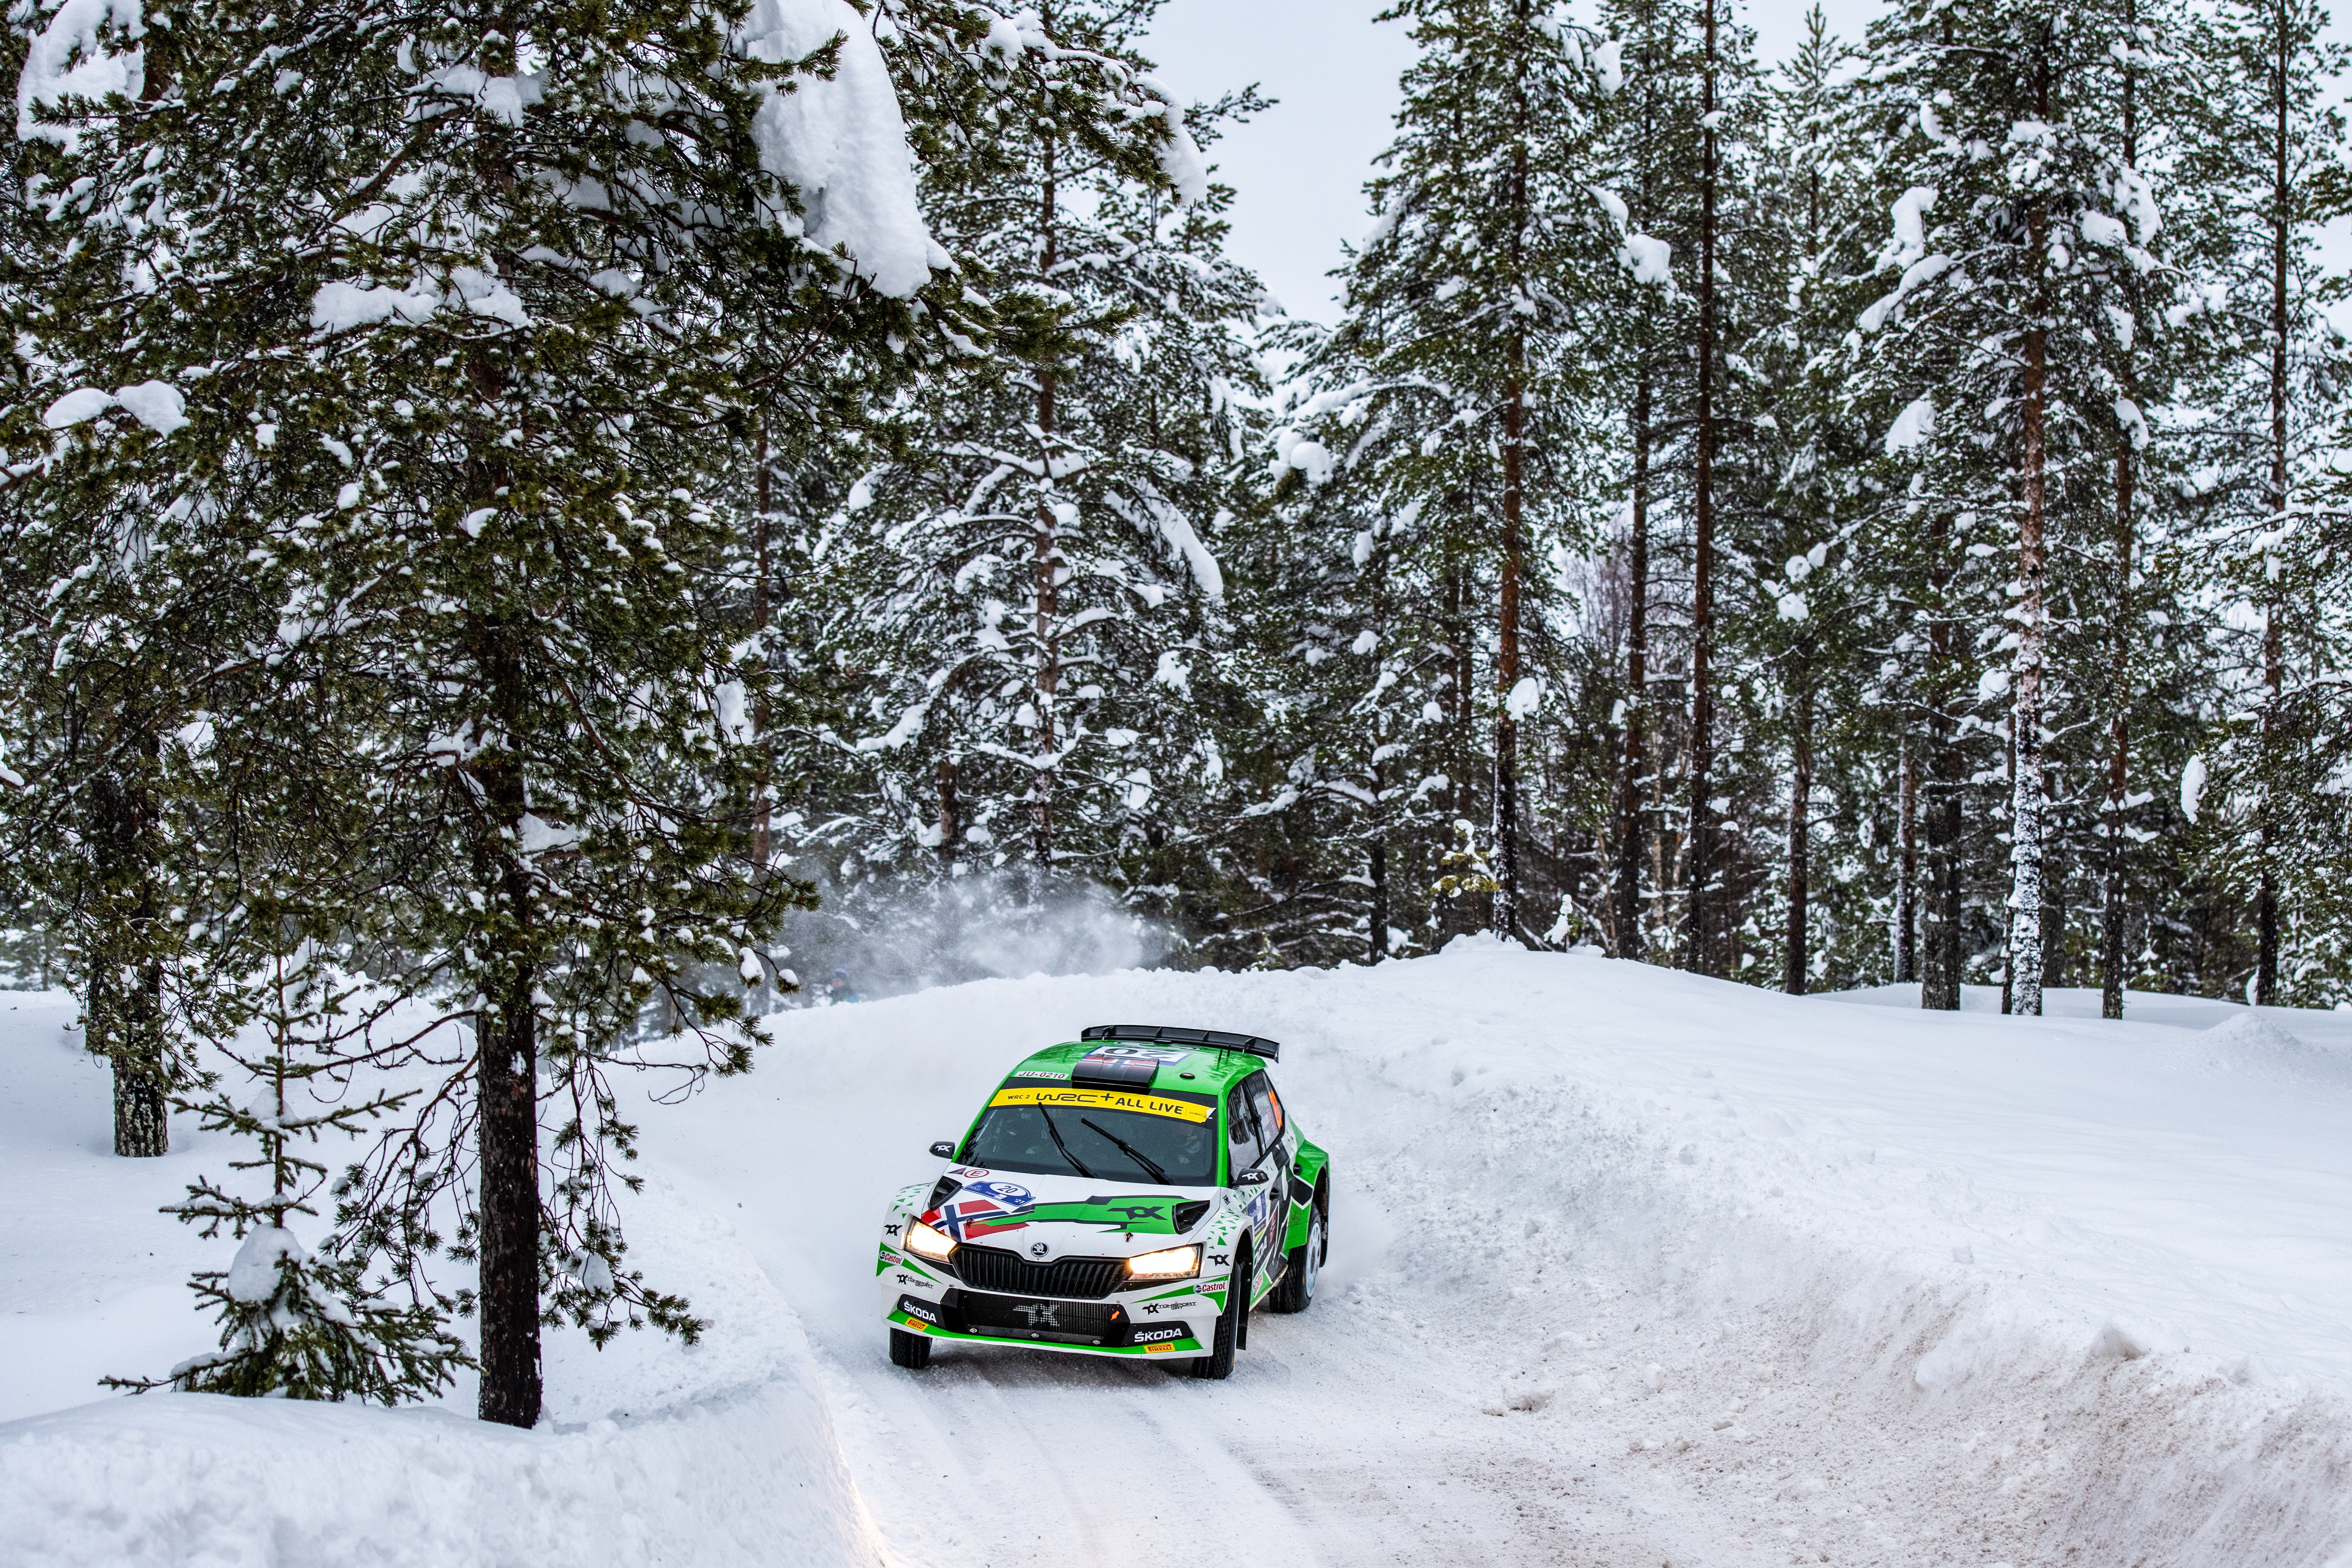 Arctic Rally Finland: SKODA Motorsport supported Andreas Mikkelsen finishes Friday leg third in WRC2 - Image 2